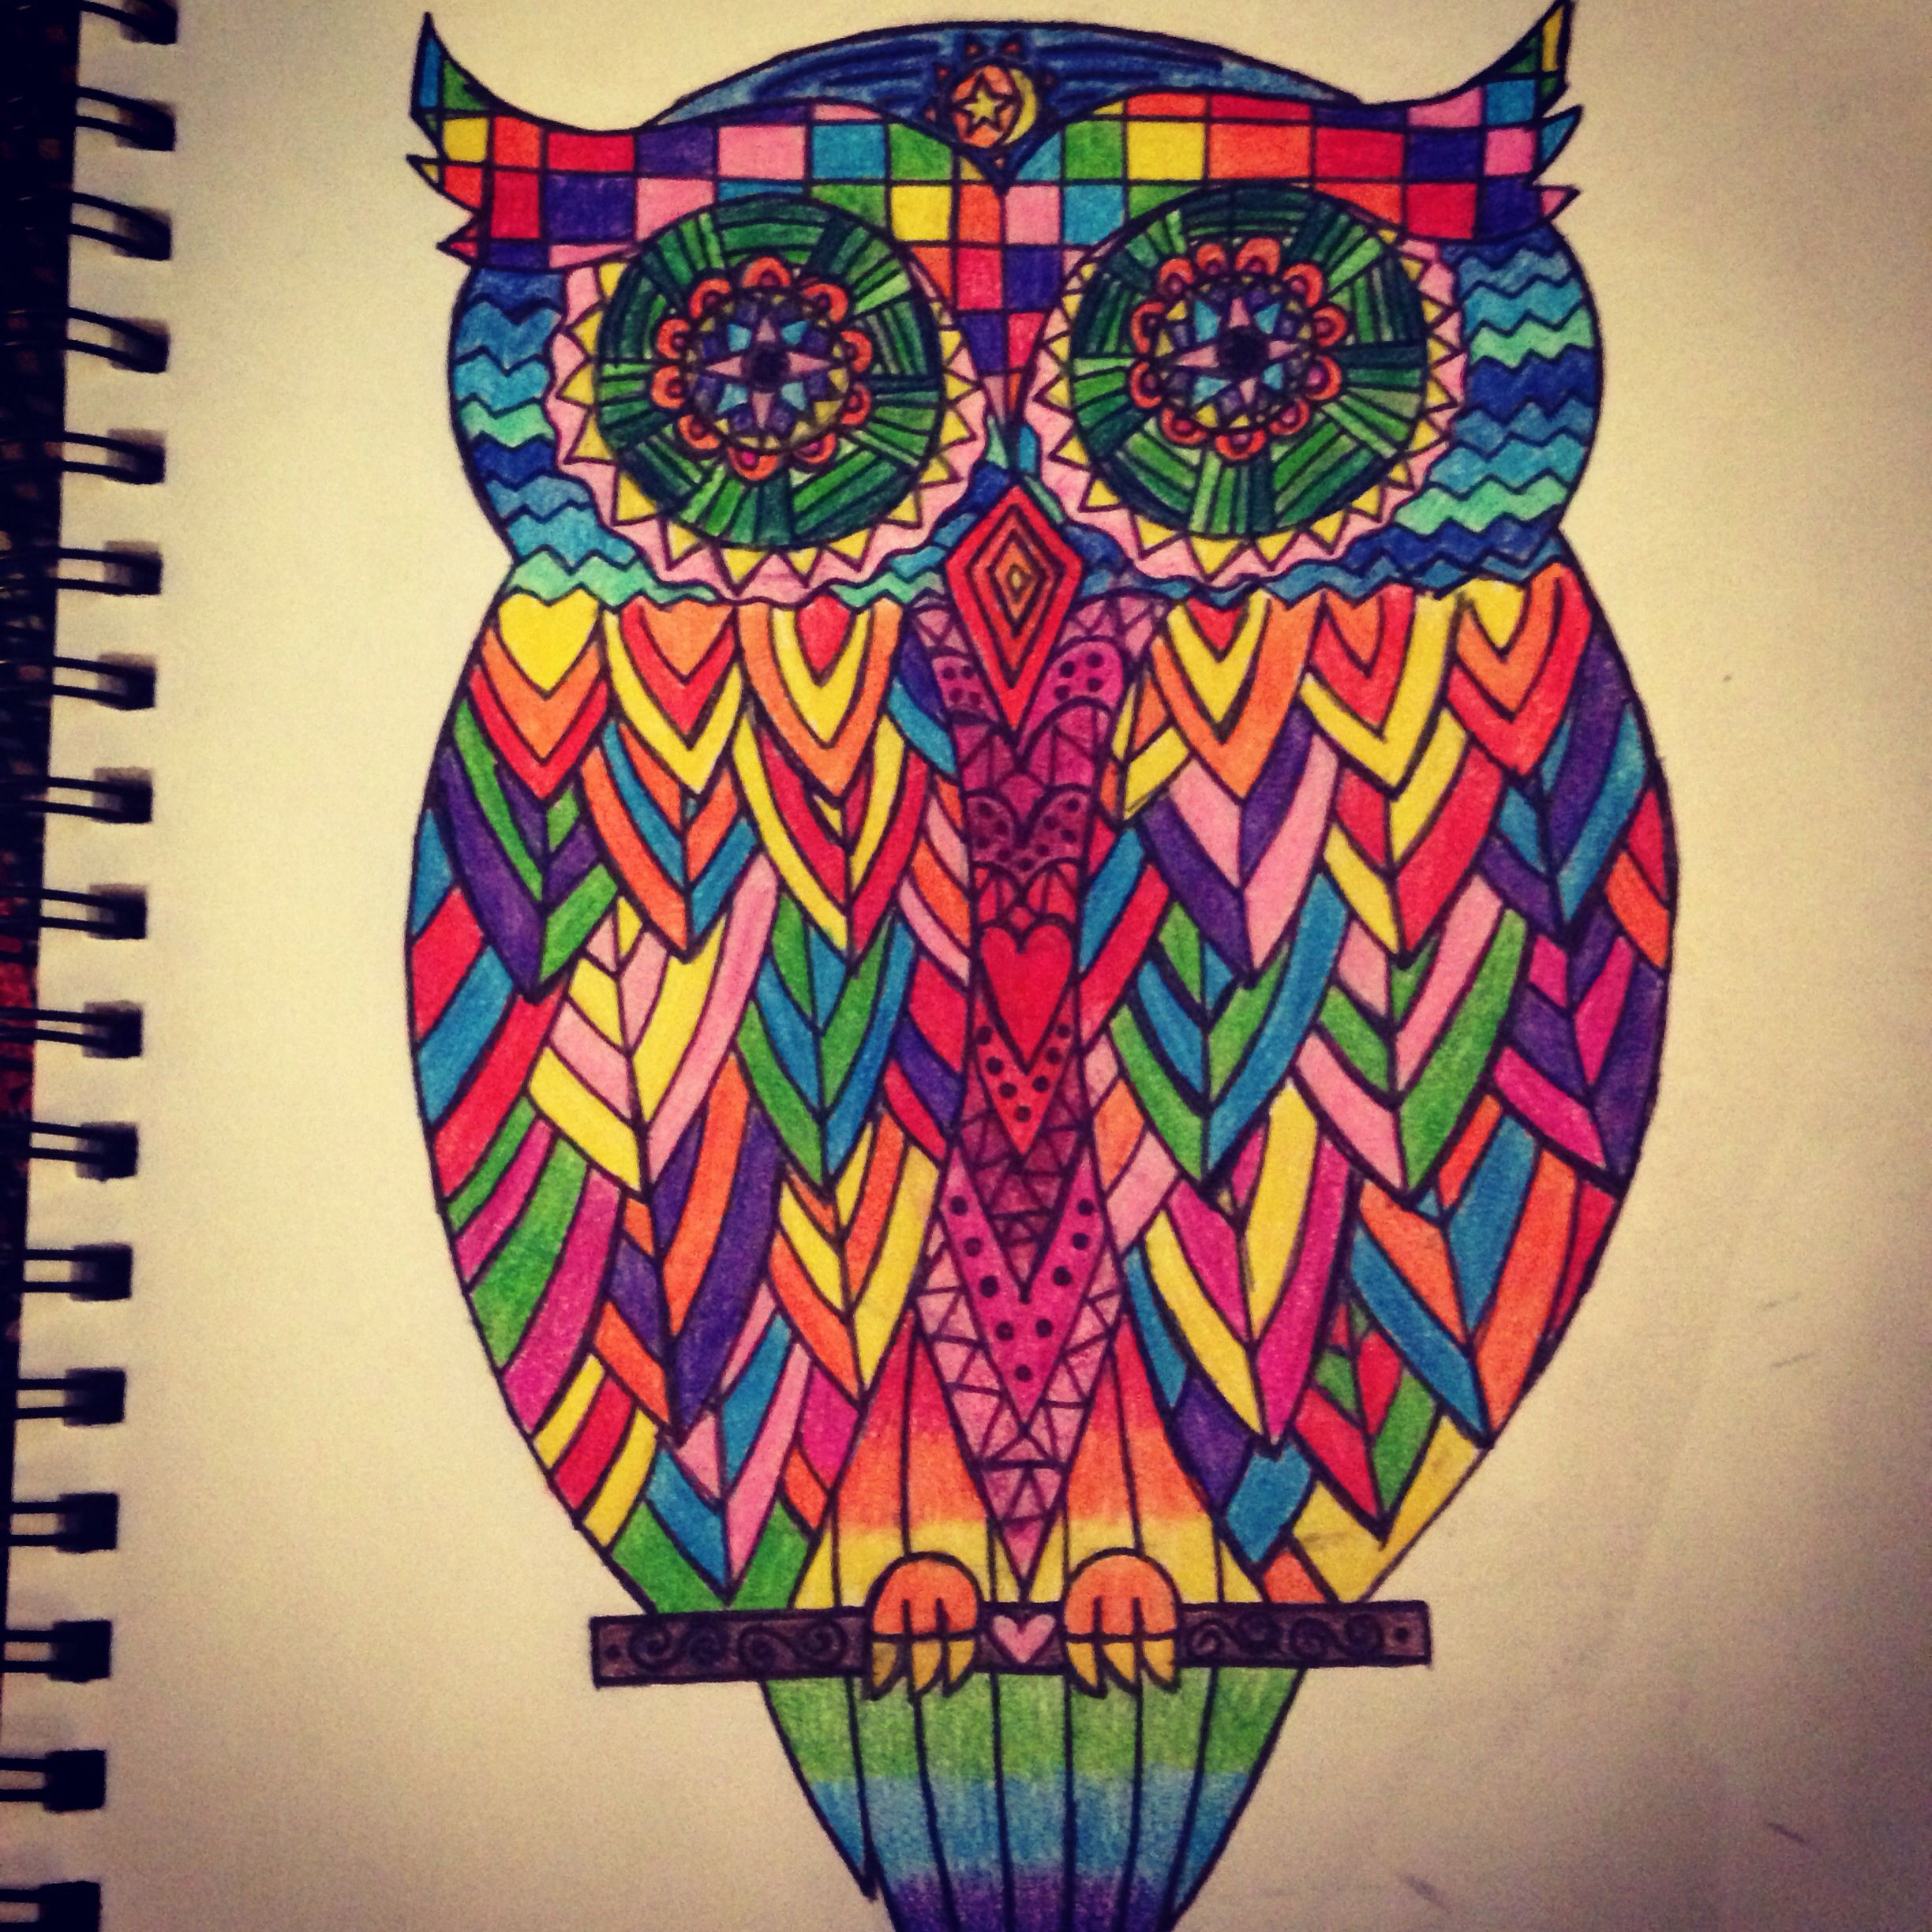 Colorful Pictures Of Owls Colorful Owl Tattoo Design Tattoosssss Pinterest